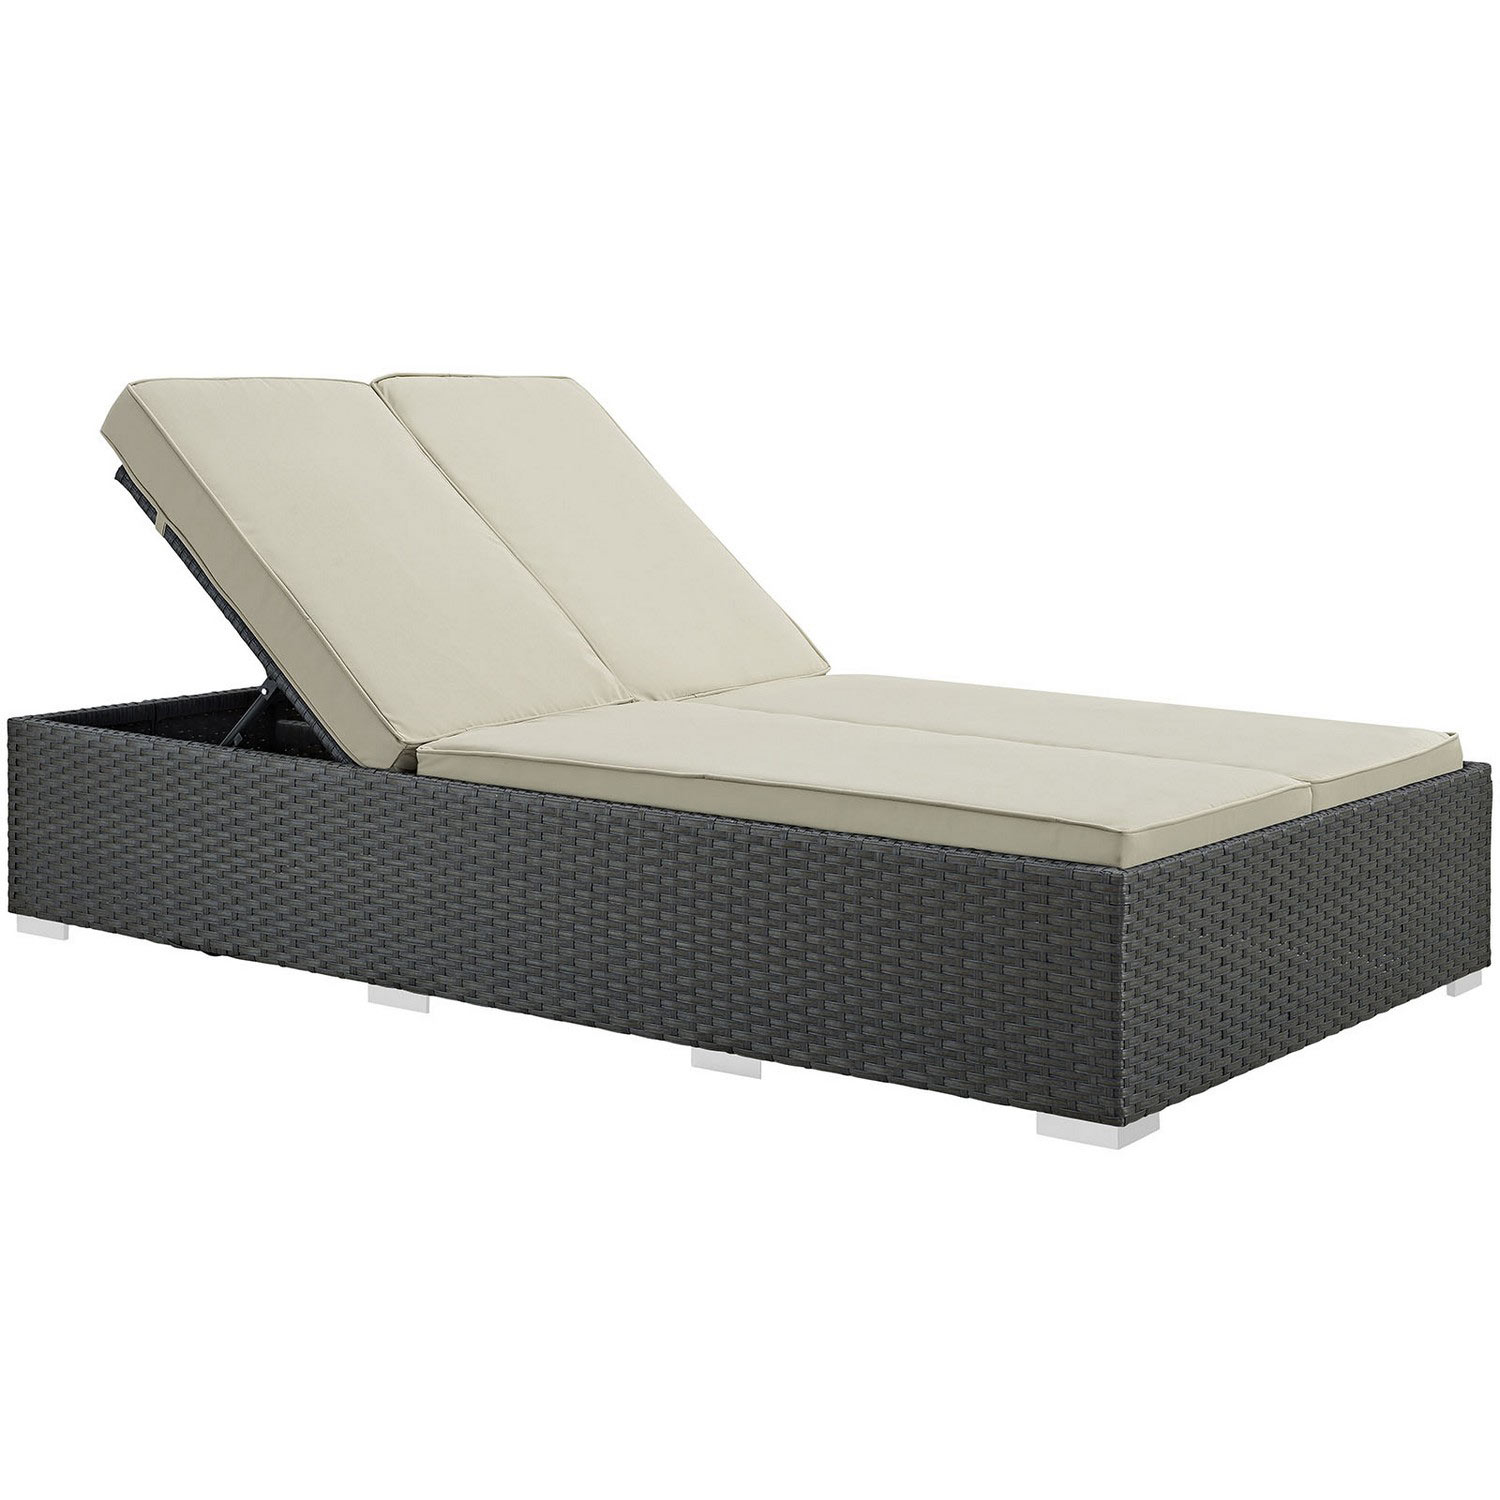 Modway Sojourn Outdoor Patio Sunbrella Double Chaise - Chocolate Beige